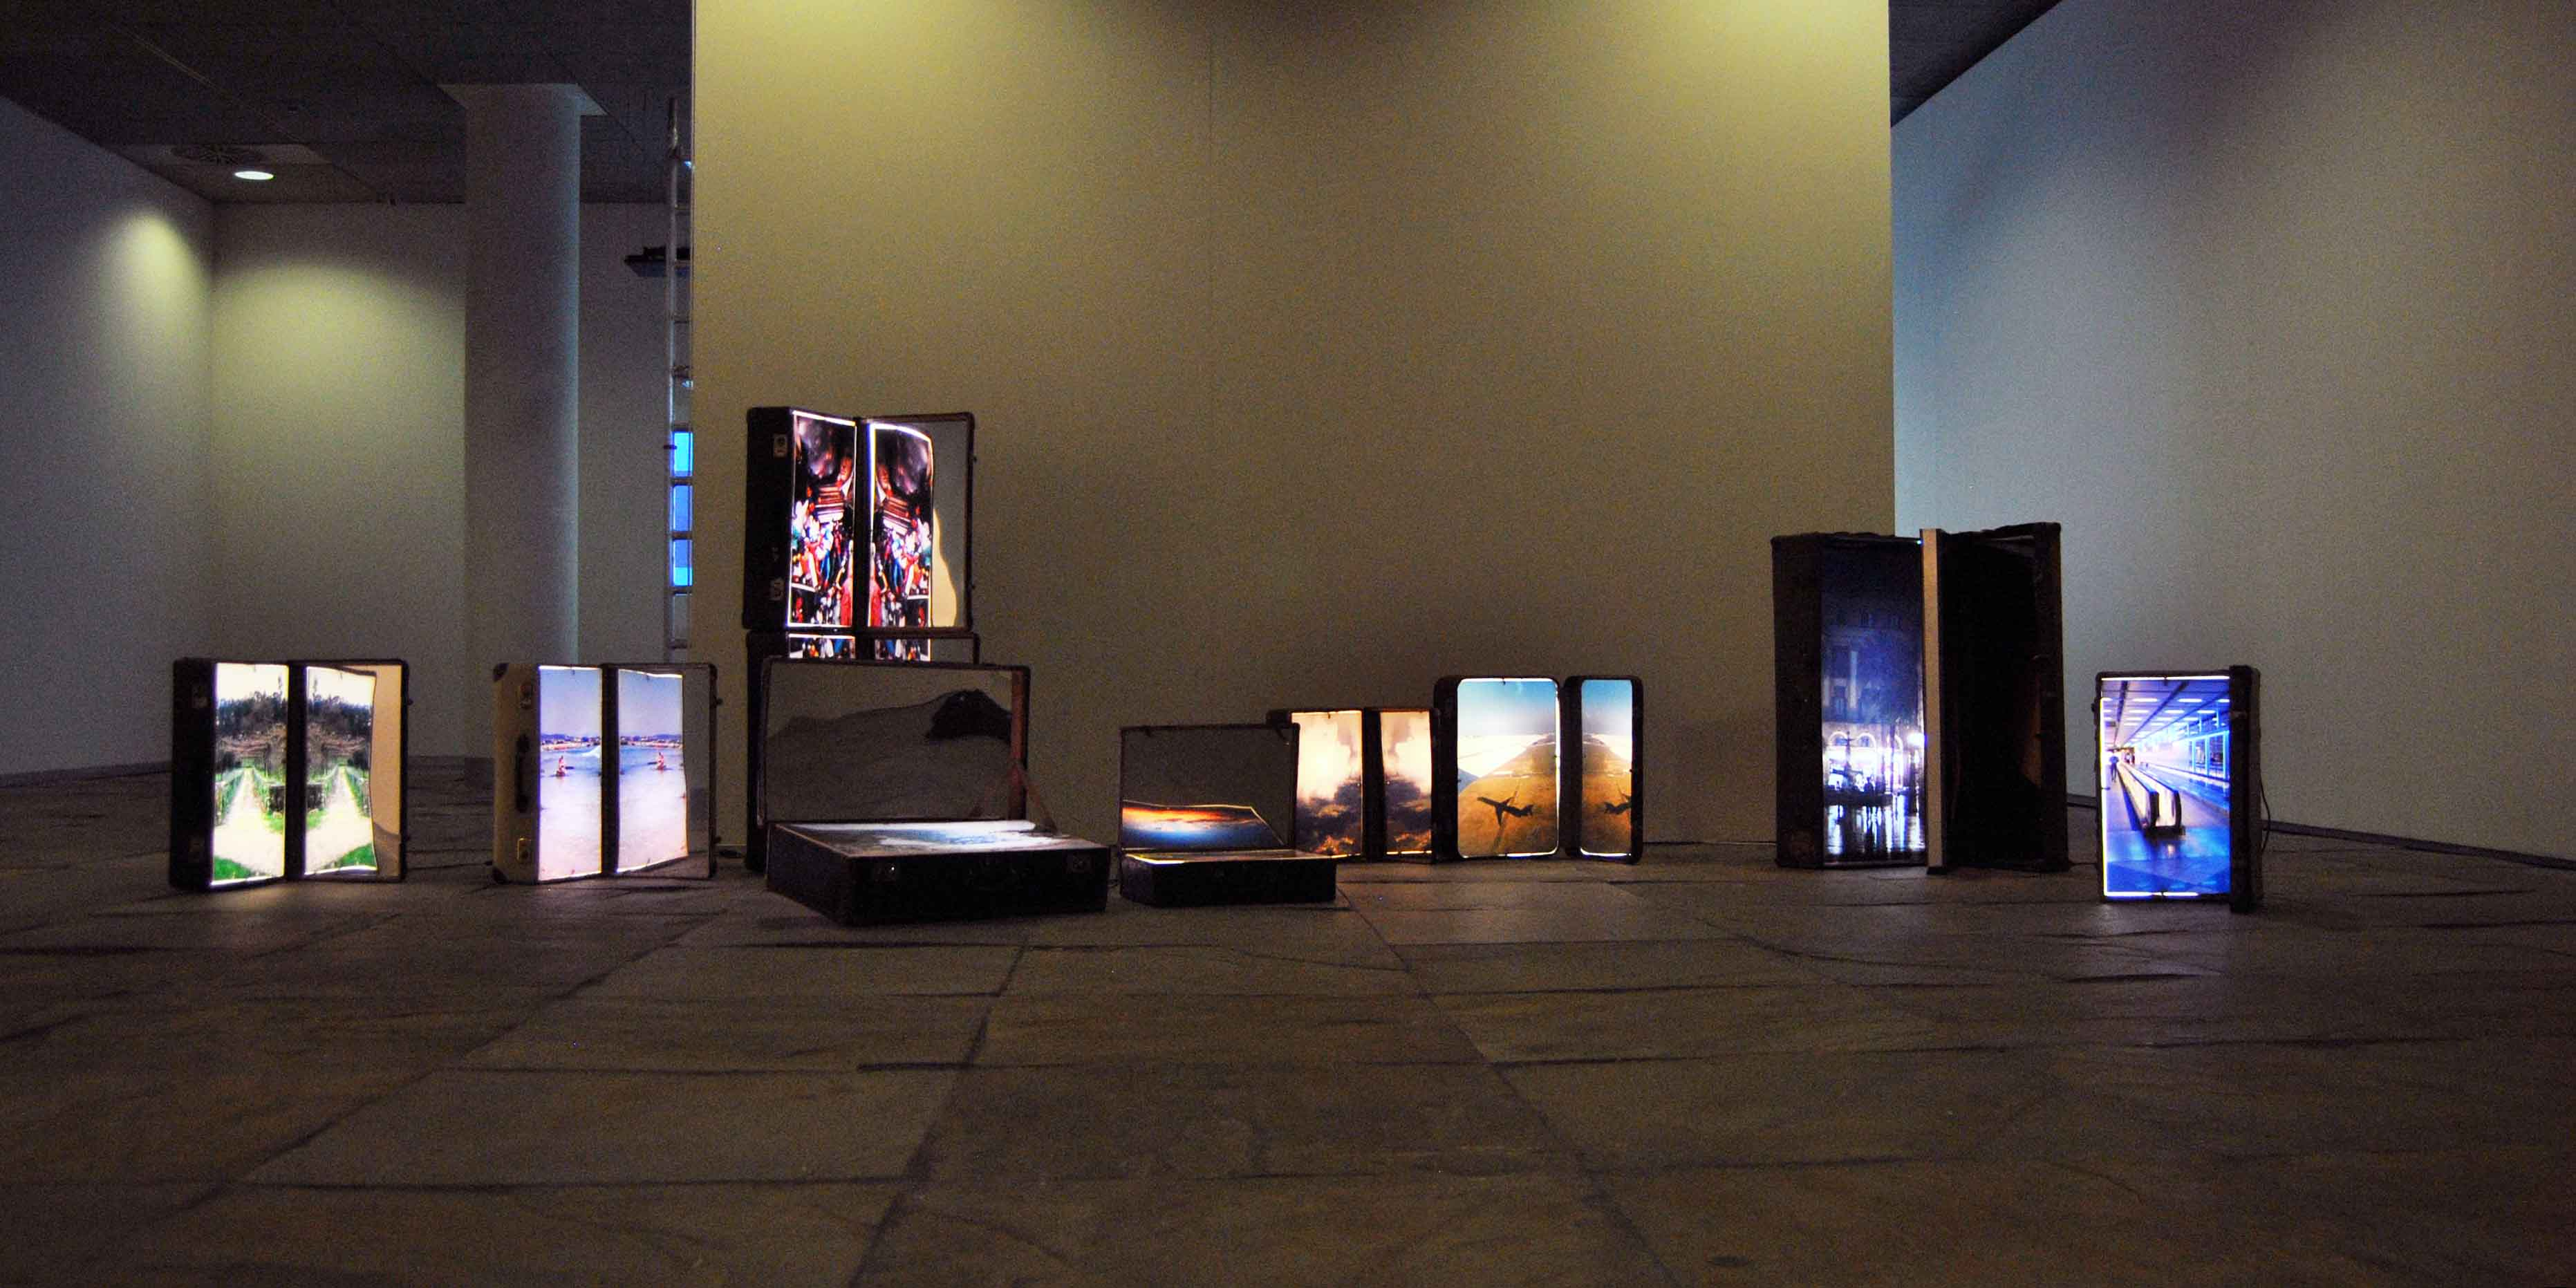 Installation of Chema Alvargonzalez's suitcases in Tránsito Solo exhibition, 2014.